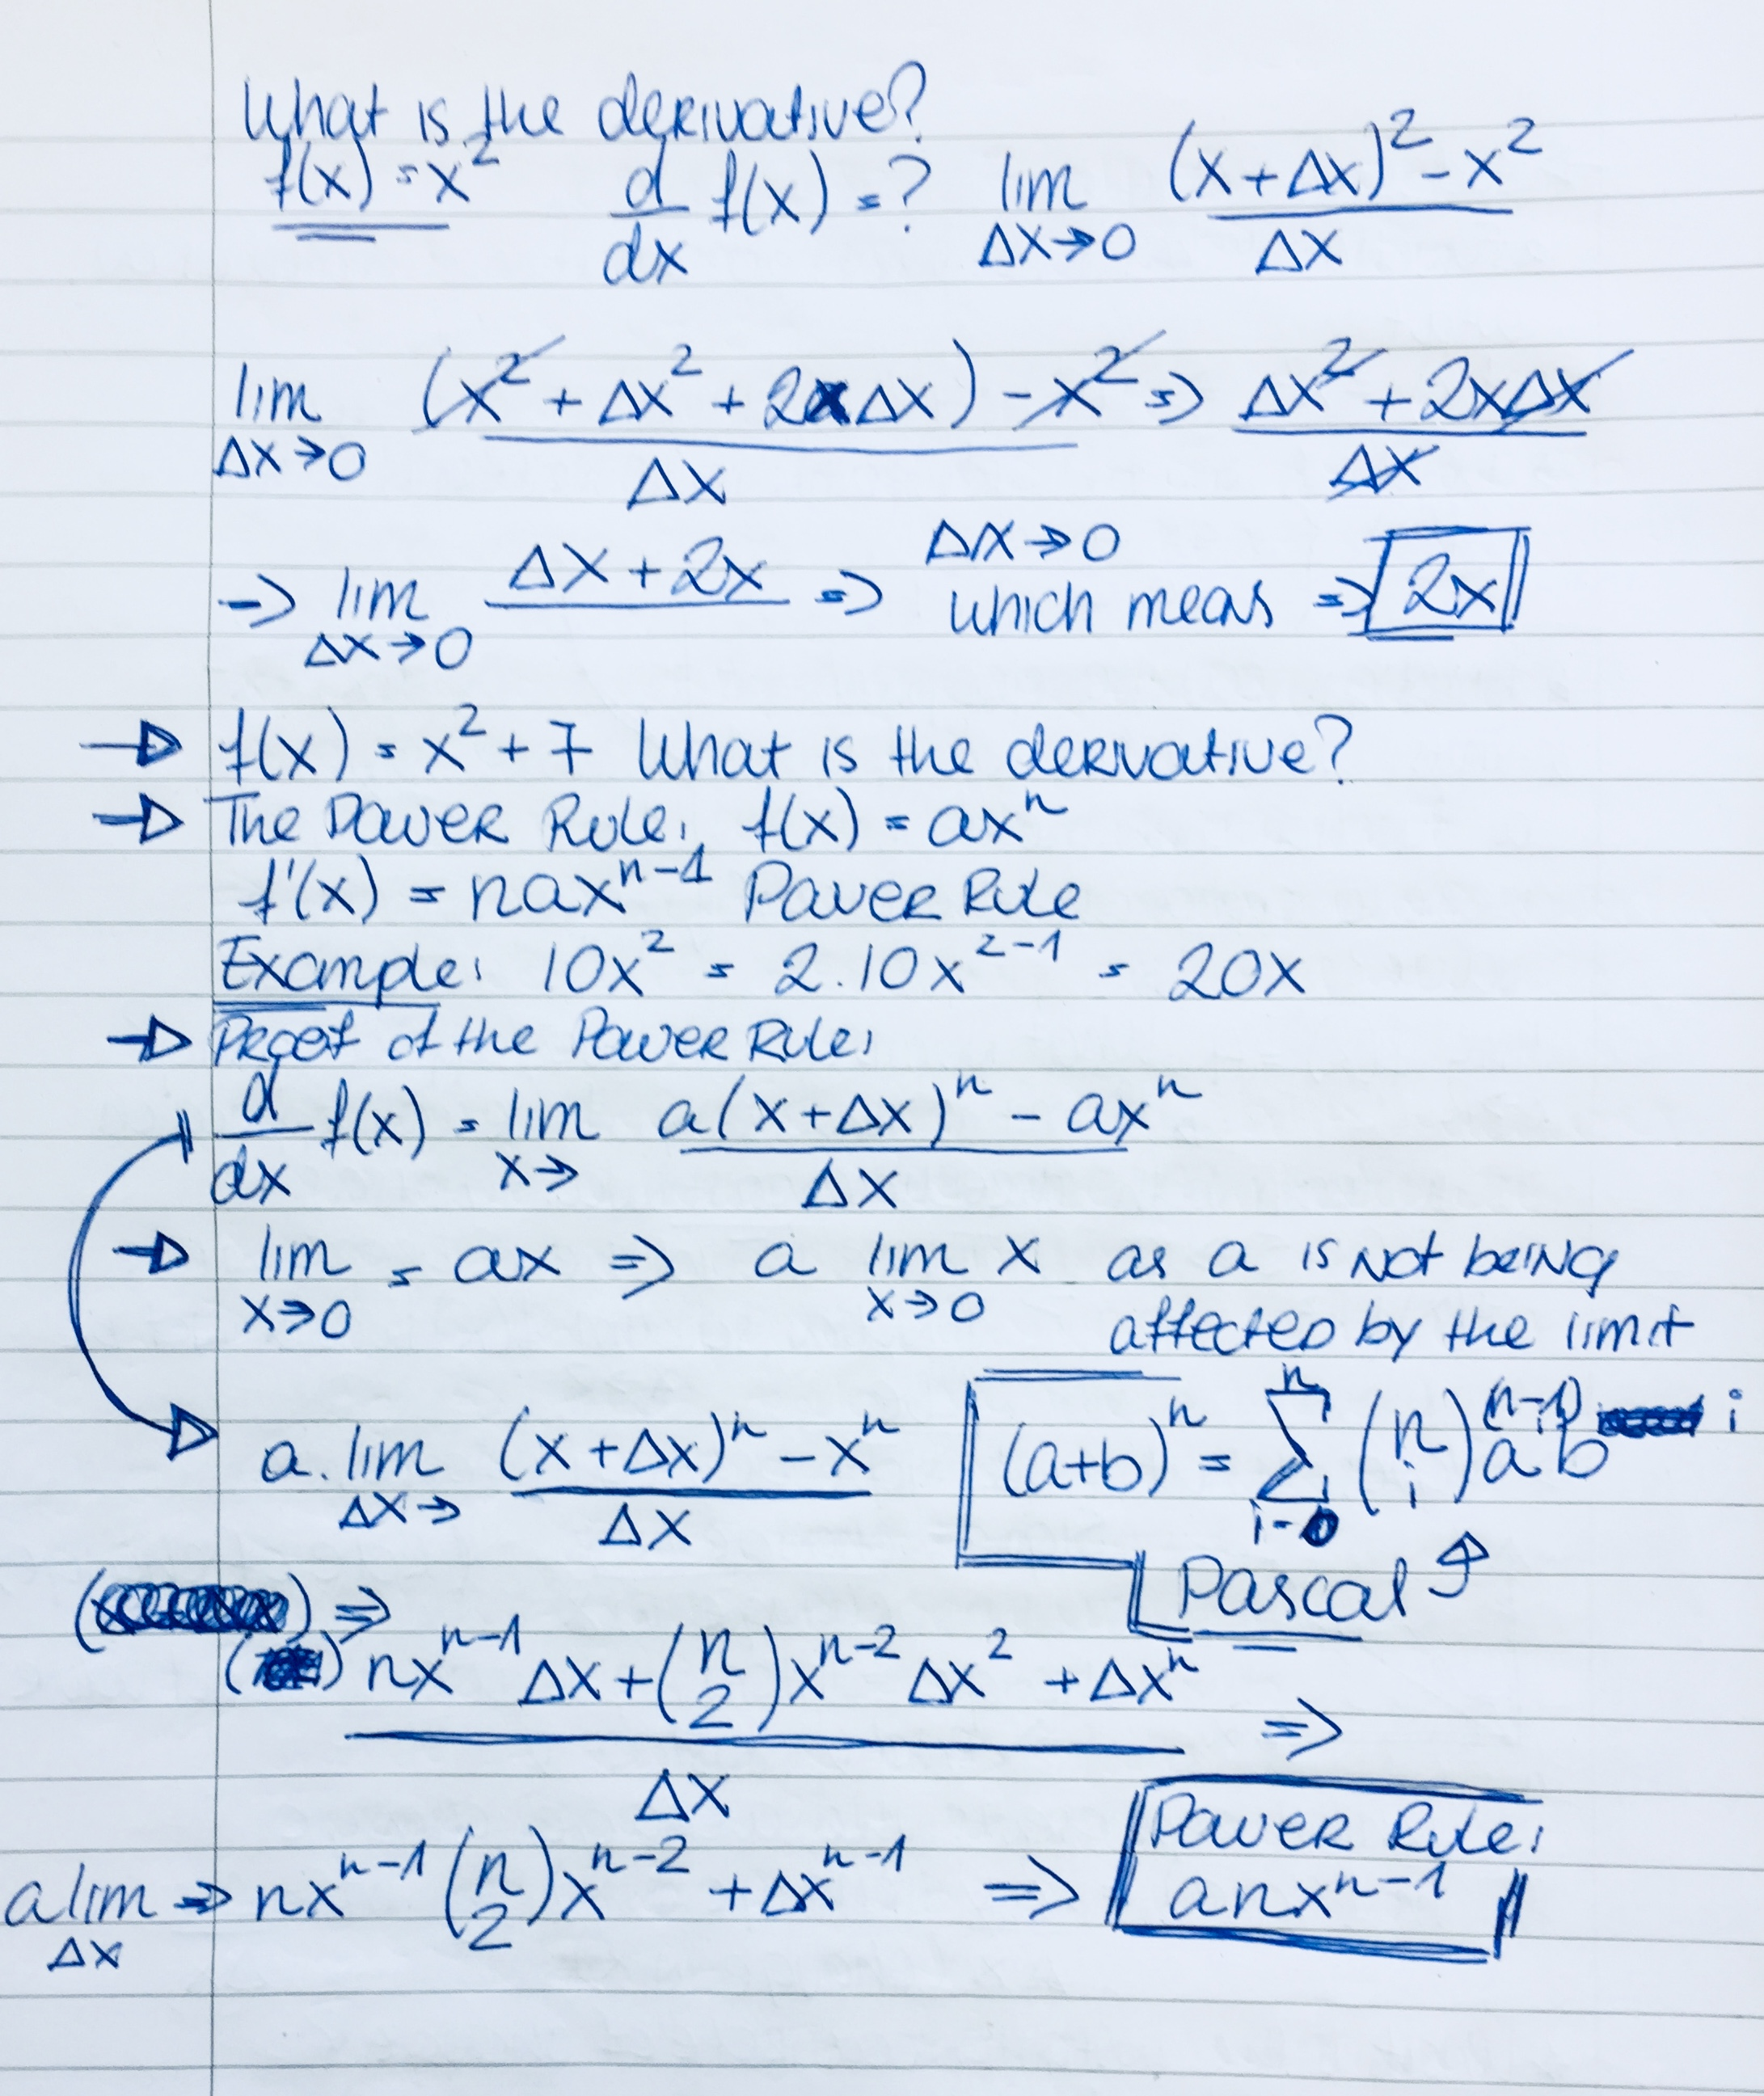 Handwritten notes from the Calculus portion of the Tech Workshop